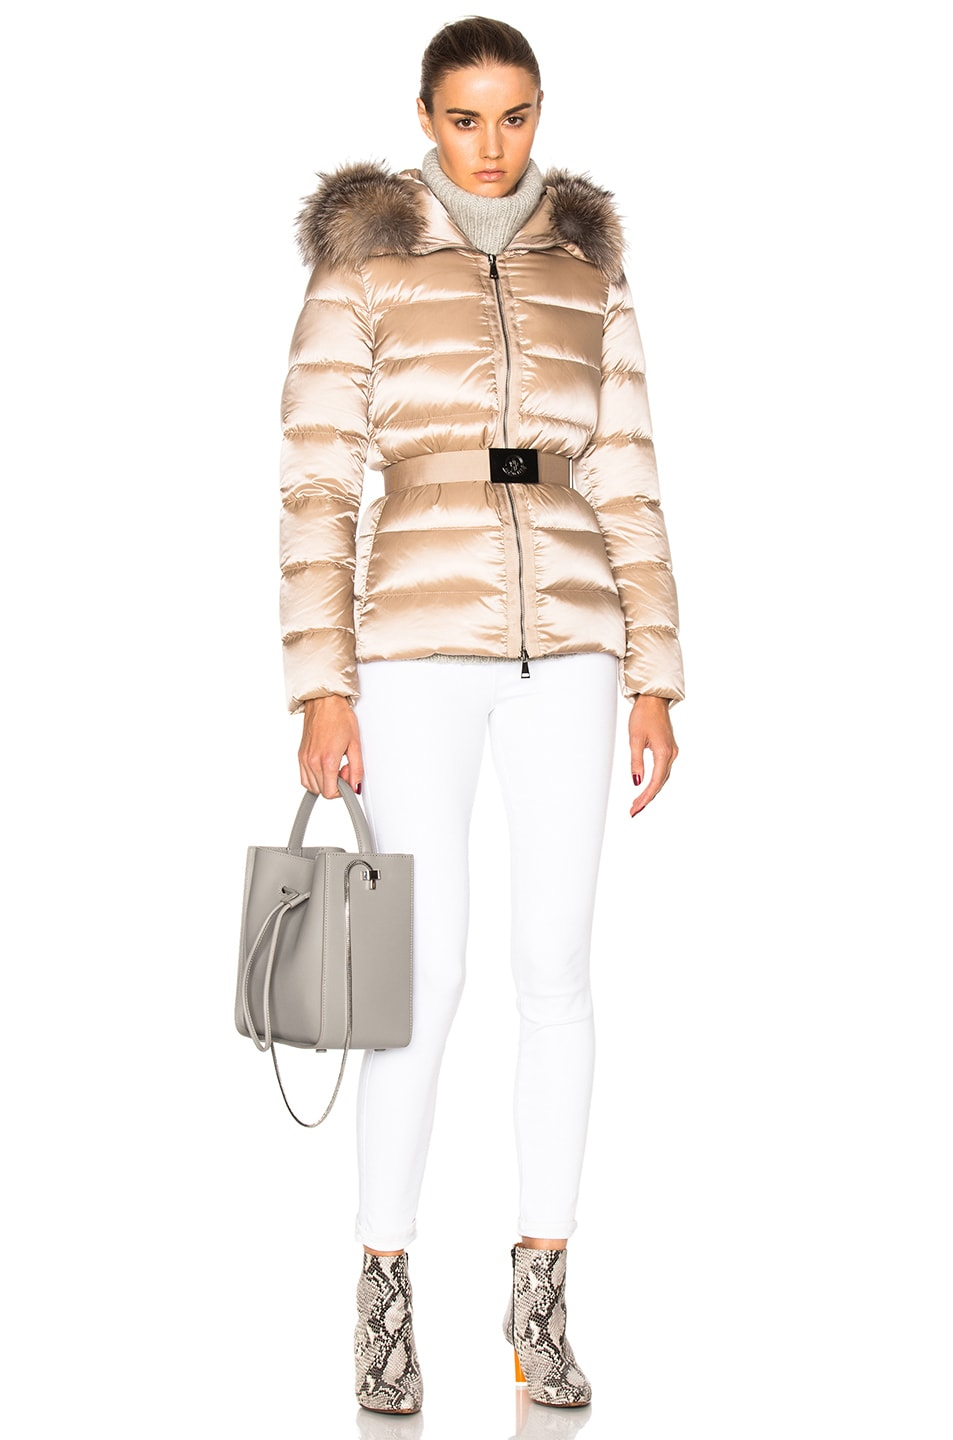 Image 6 of Moncler Tatie Giubbotto Jacket With Fox Fur in Taupe